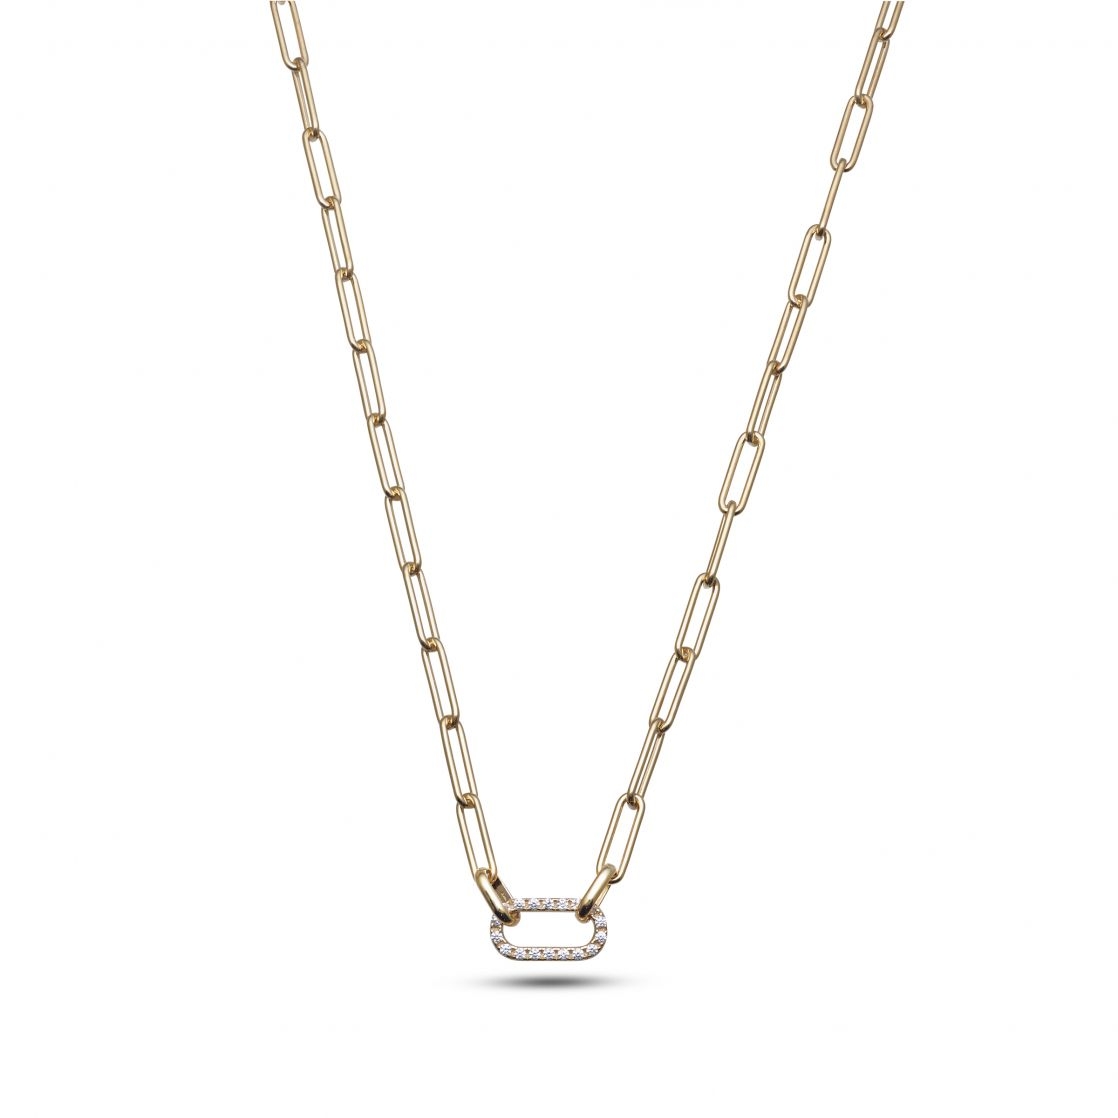 Necklace with pave' link